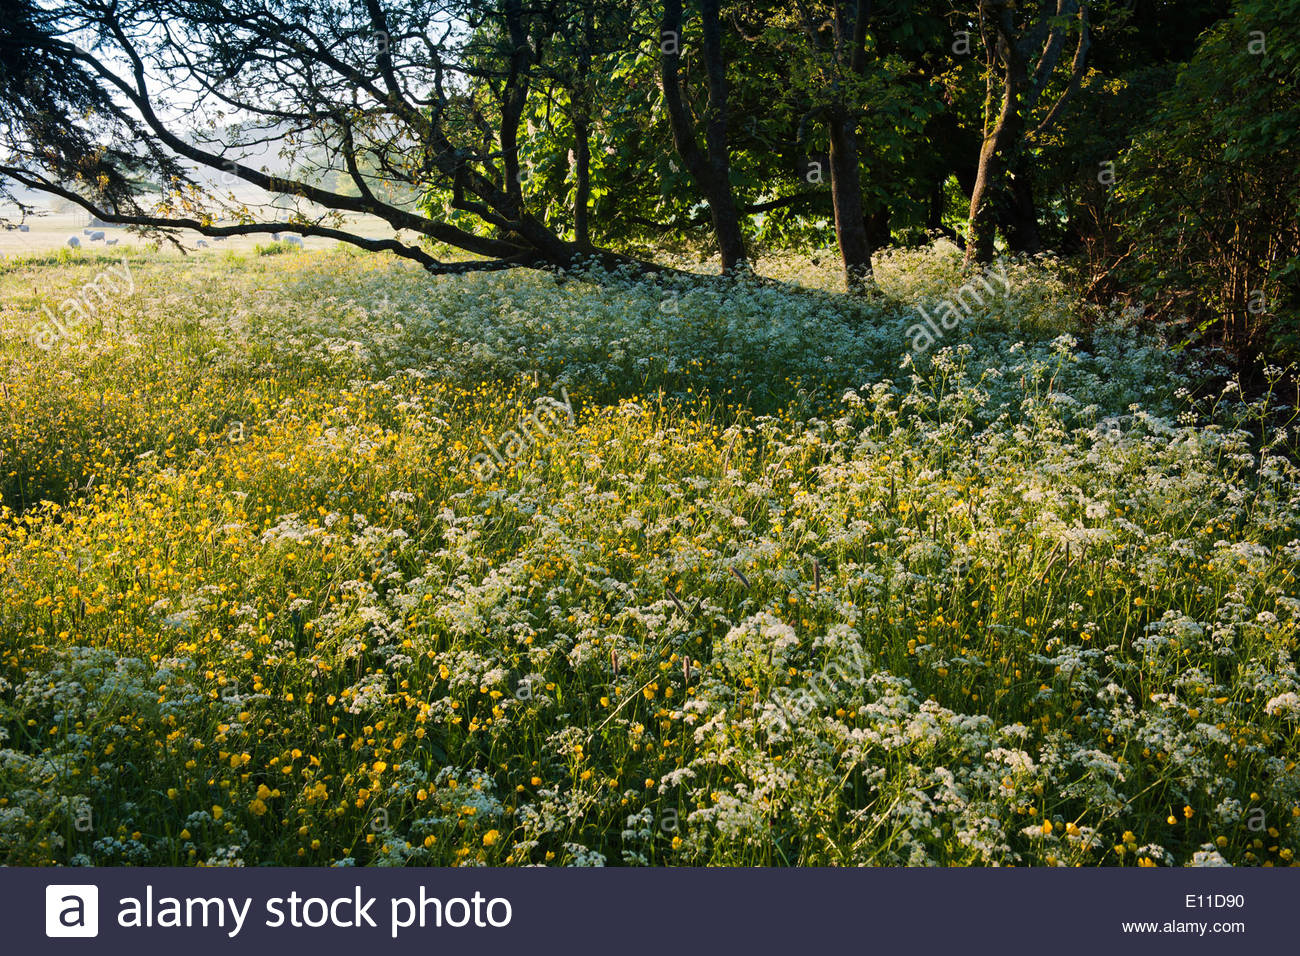 wildflower areas borders Cow Parsley Anthriscus sylvestris Creeping Buttercups Ranunculus repens early summer flowers - Stock Image